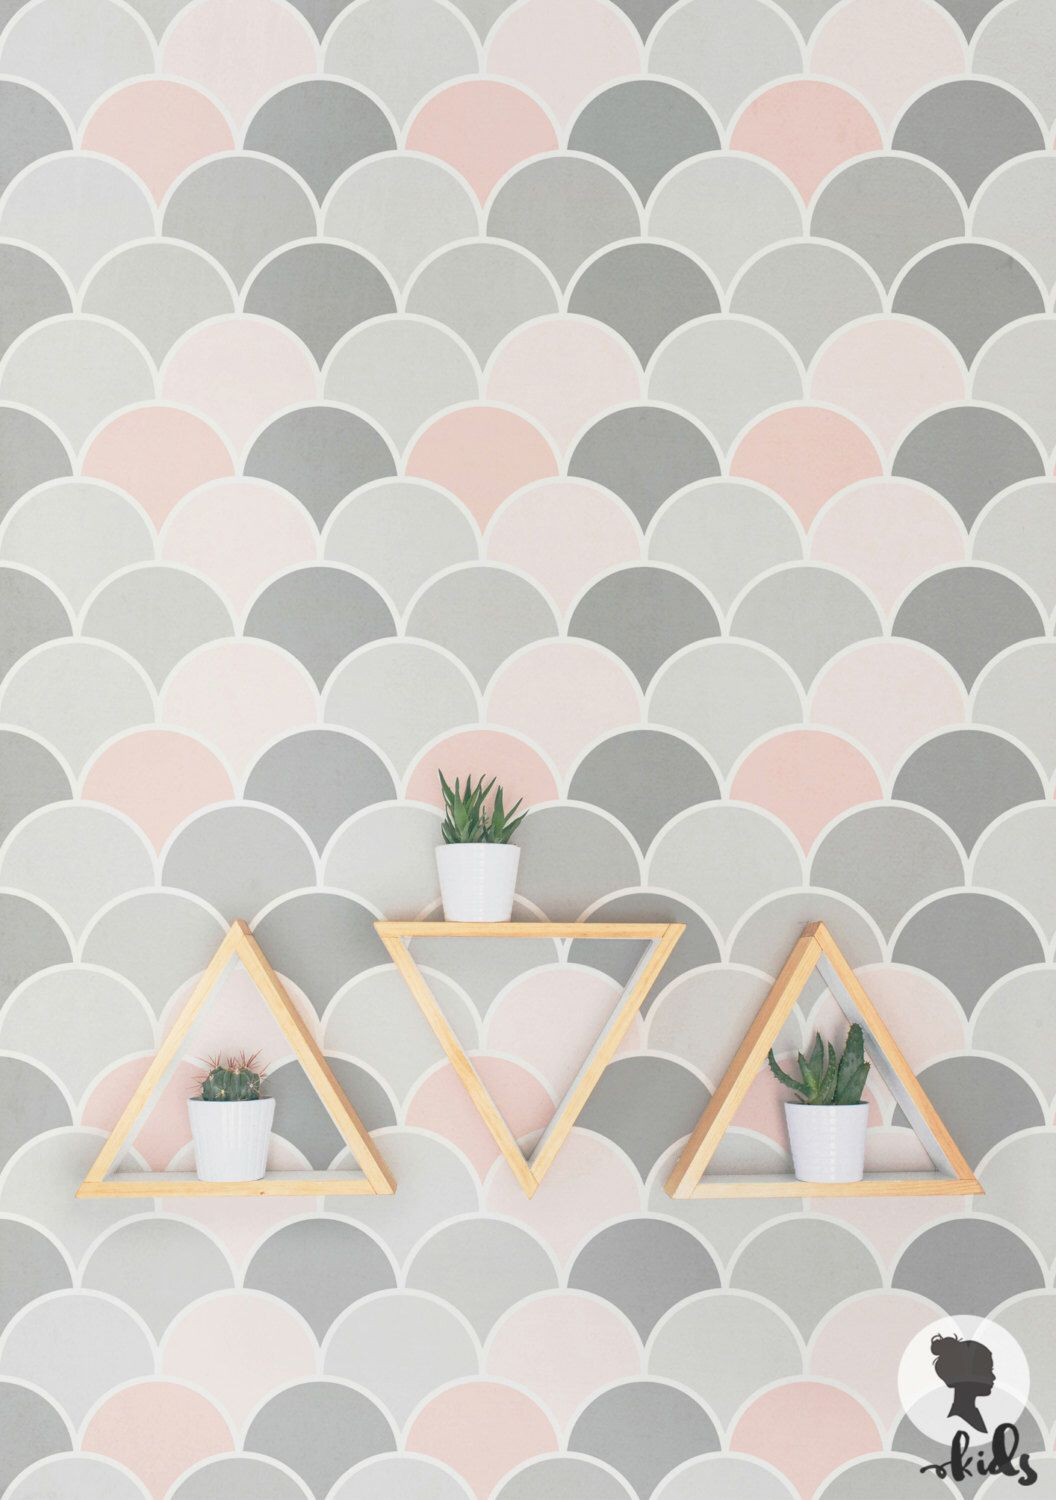 Scallop Kids Room Wallpaper Pink And Grey Removable Or Non Woven Wallpaper Removable Wallpaper Kids Room Wallpaper Room Wallpaper